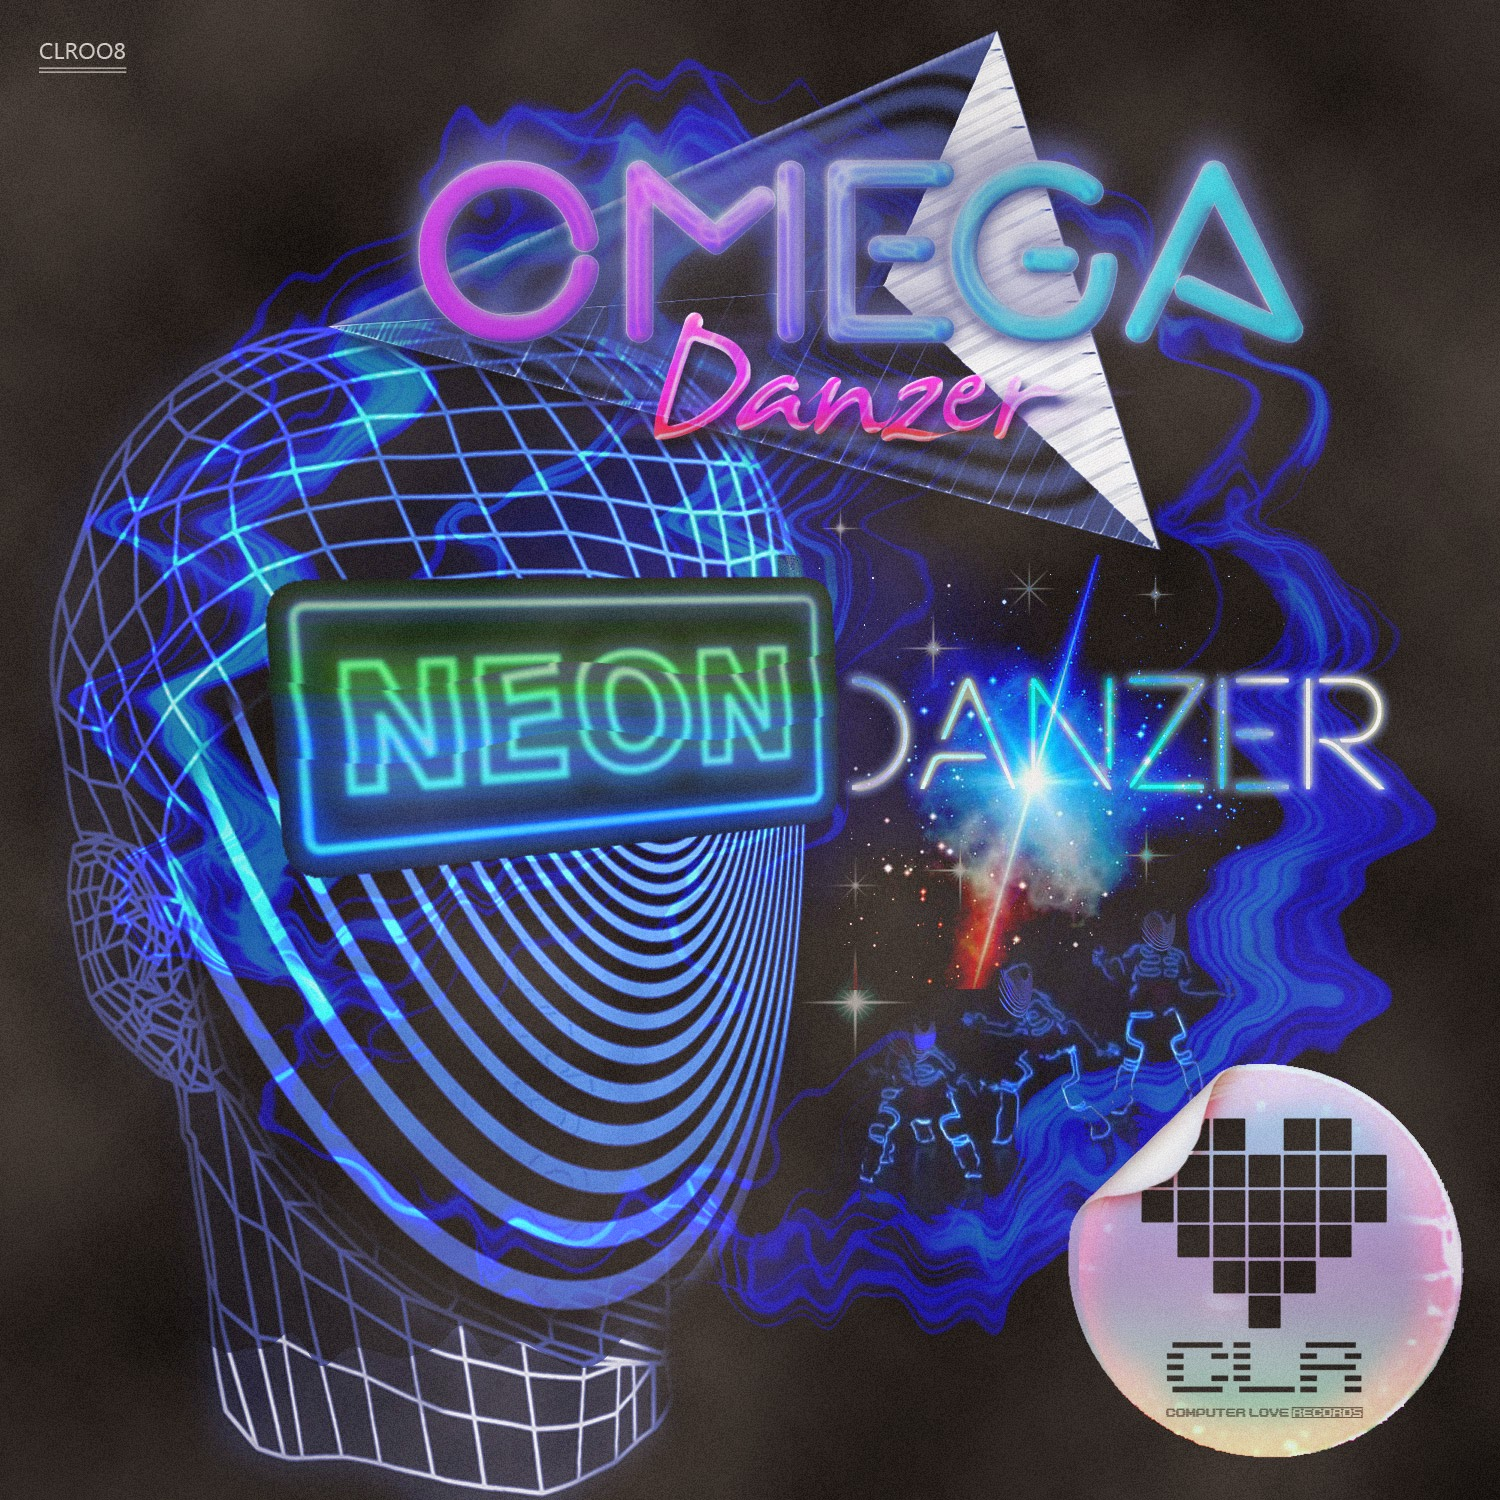 http://computerloverecords.blogspot.com/p/omega-danzer-neon-danzer-single.html